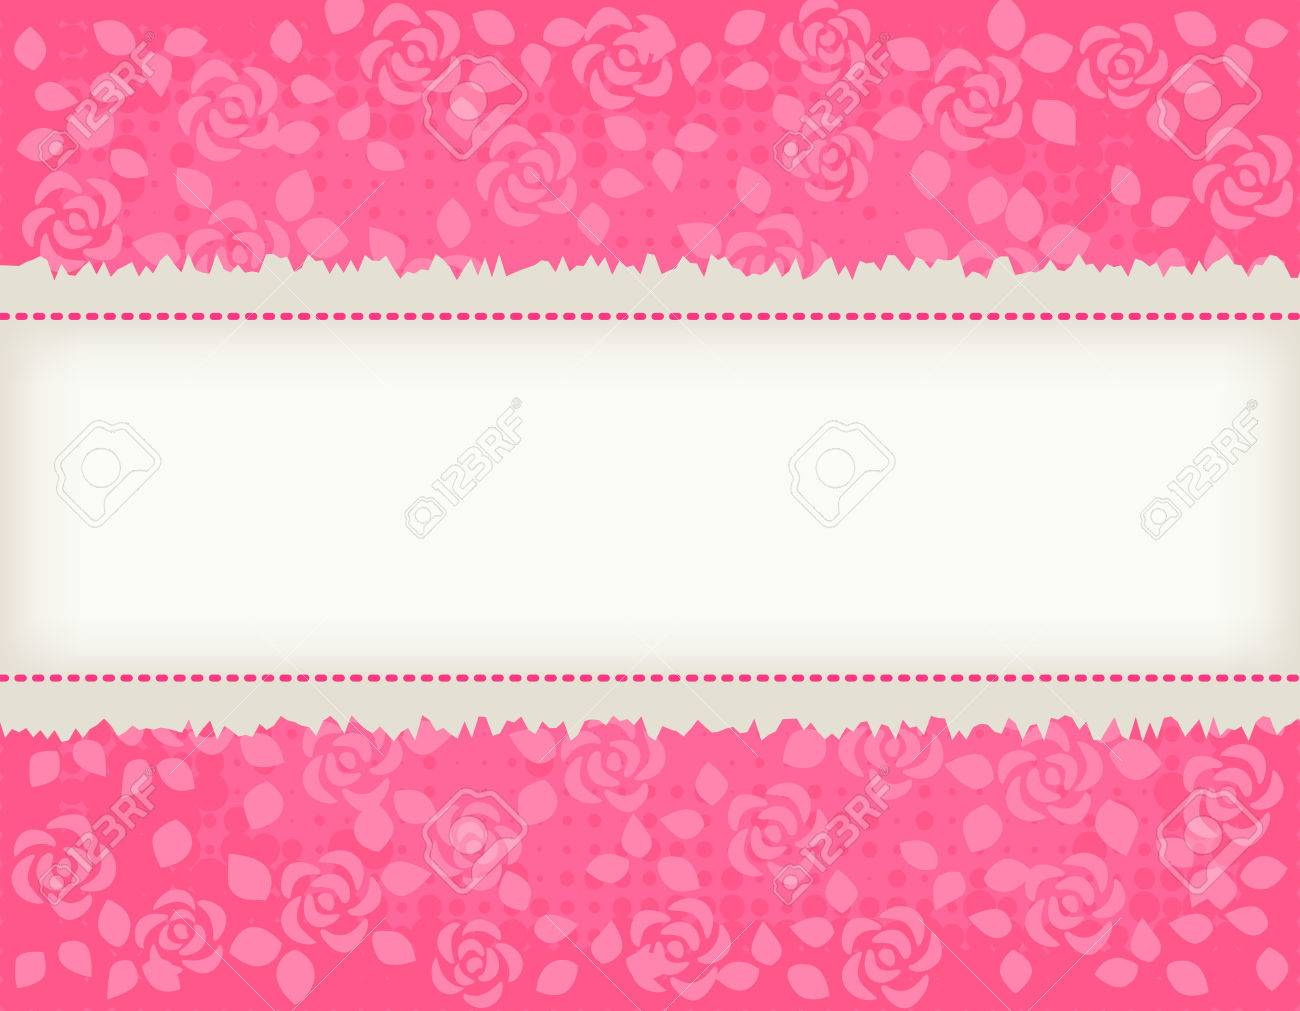 Pretty Pink Roses Texrured Background Wth Light Brown Frame ...